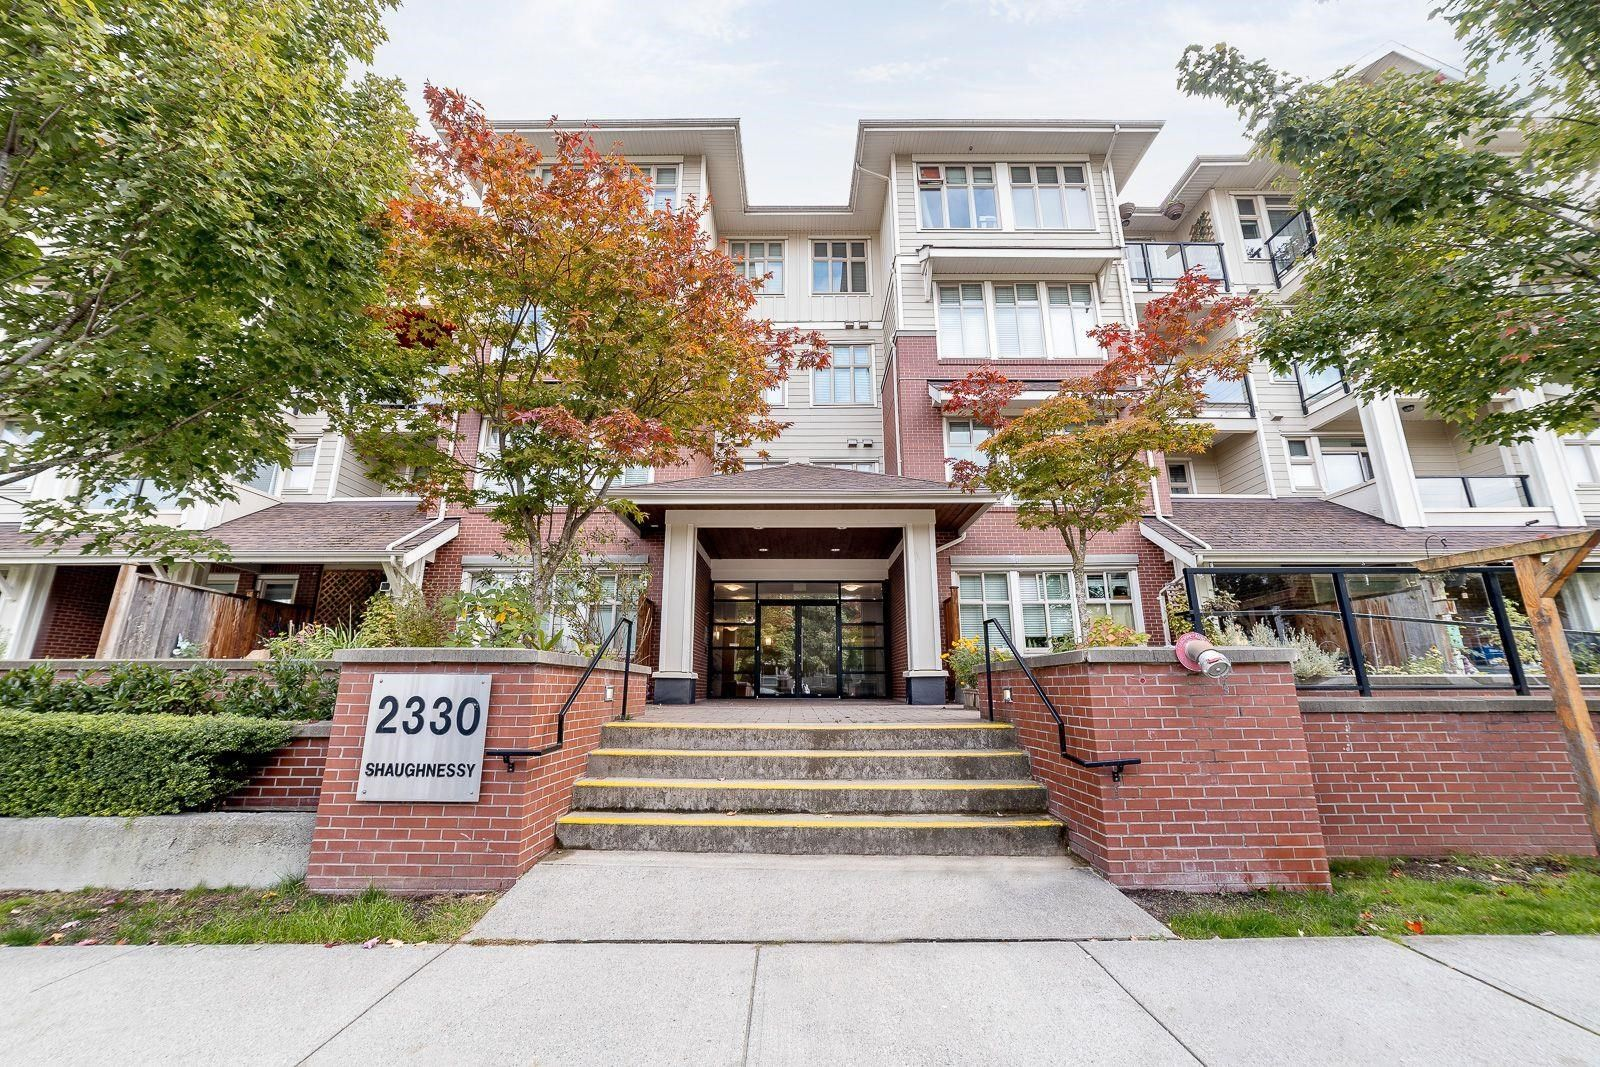 """Main Photo: 310 2330 SHAUGHNESSY Street in Port Coquitlam: Central Pt Coquitlam Condo for sale in """"AVANTI"""" : MLS®# R2622993"""